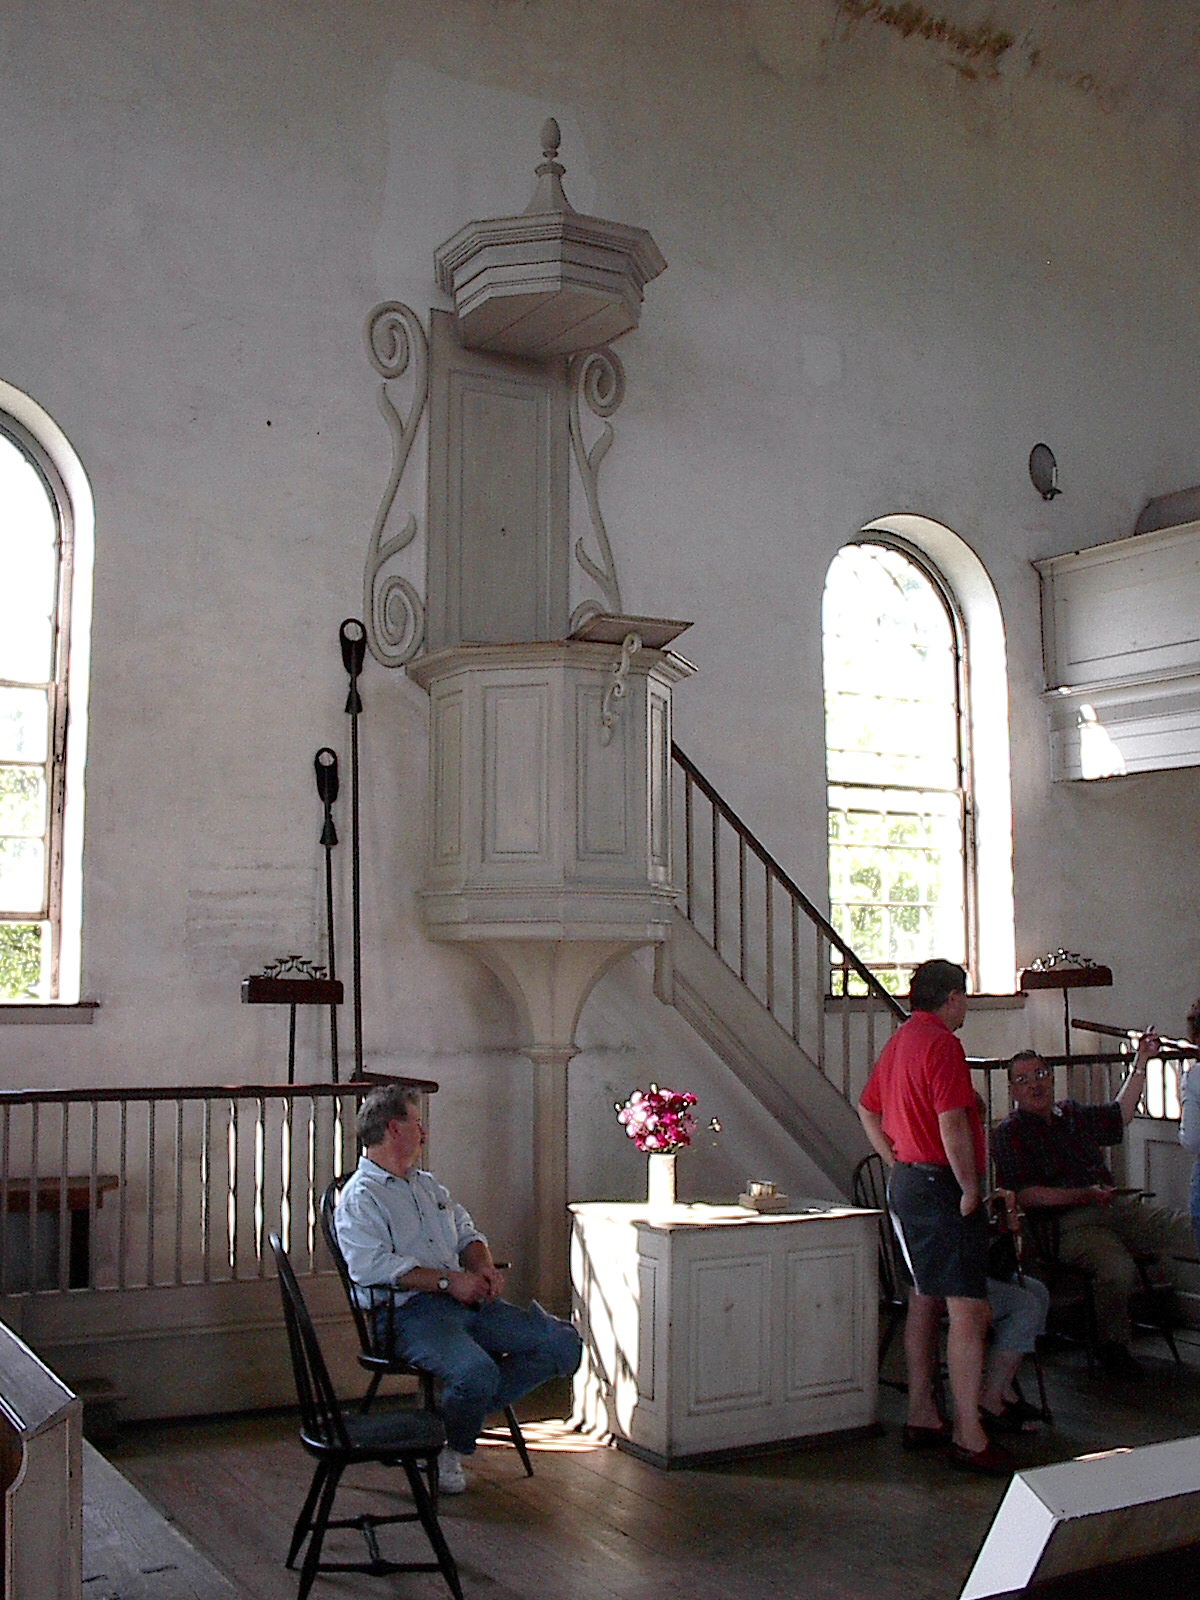 Interior of Old Zion Church